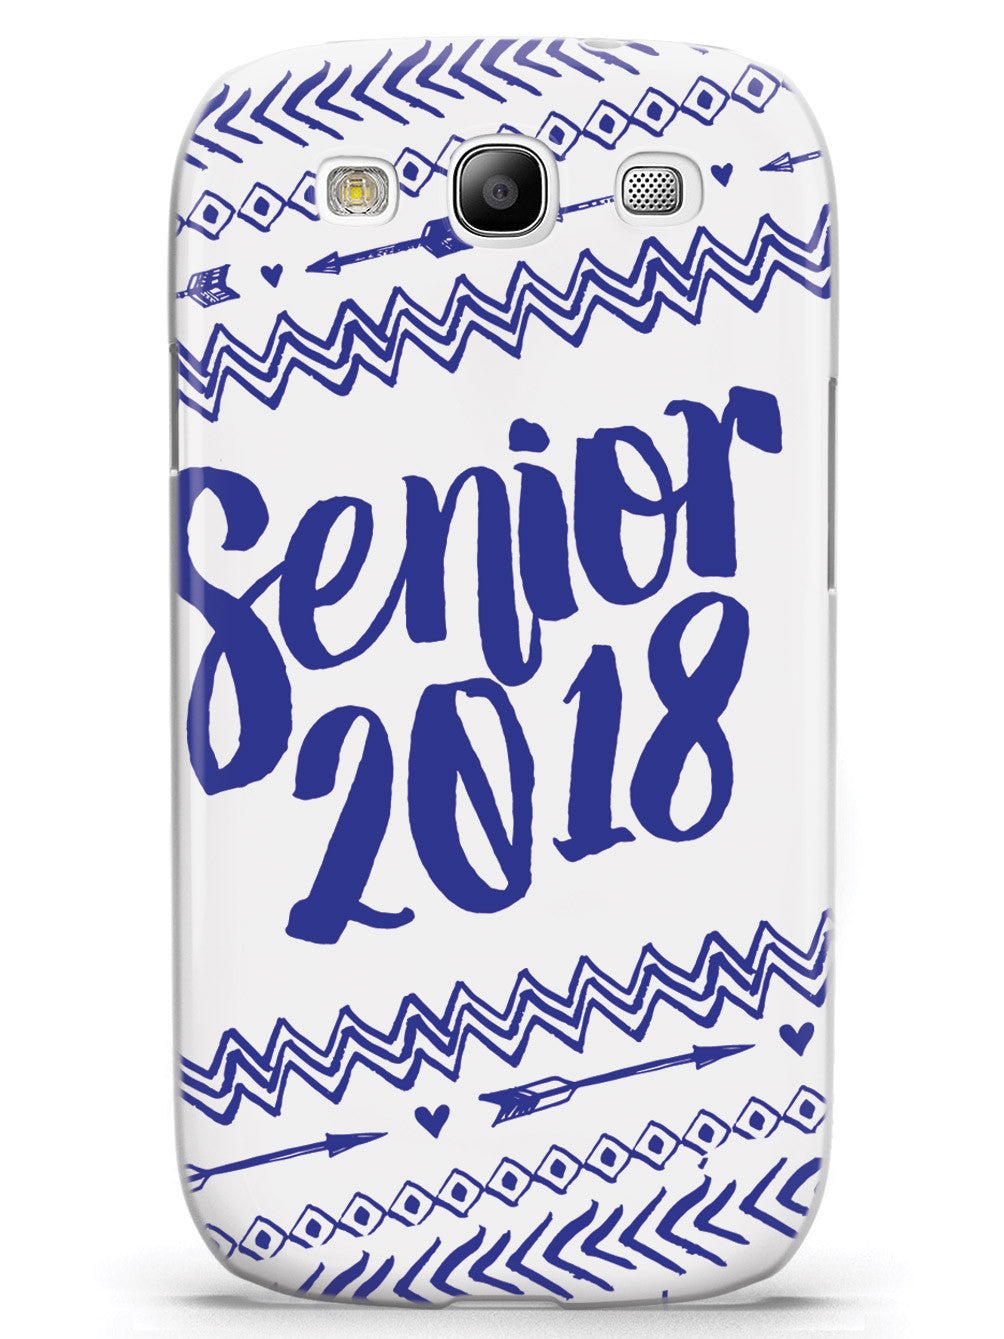 Senior 2018 - Blue Case